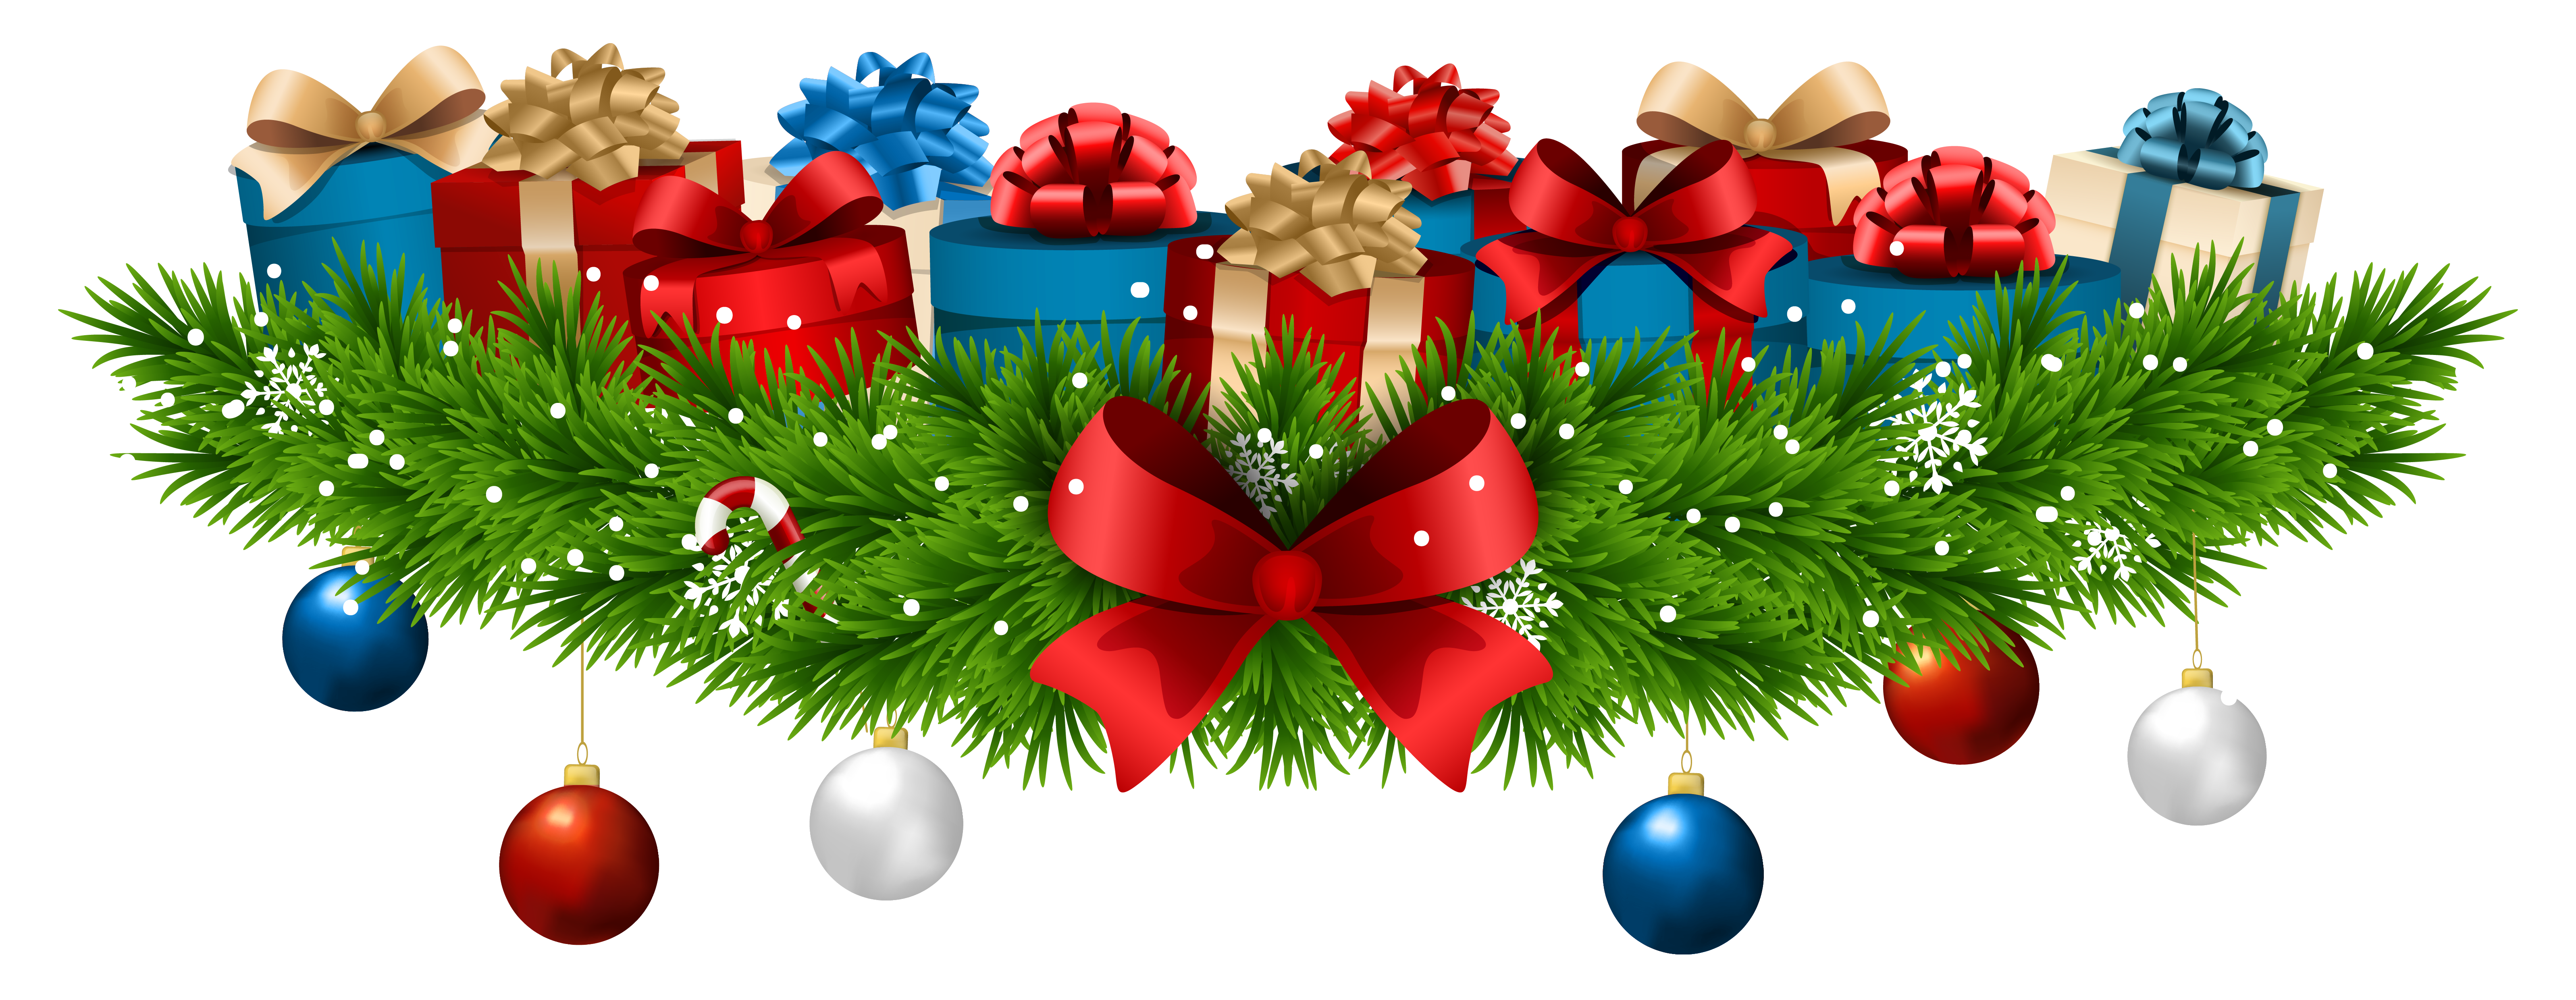 Christmas Decoration with Gifts PNG Clip Art Image.